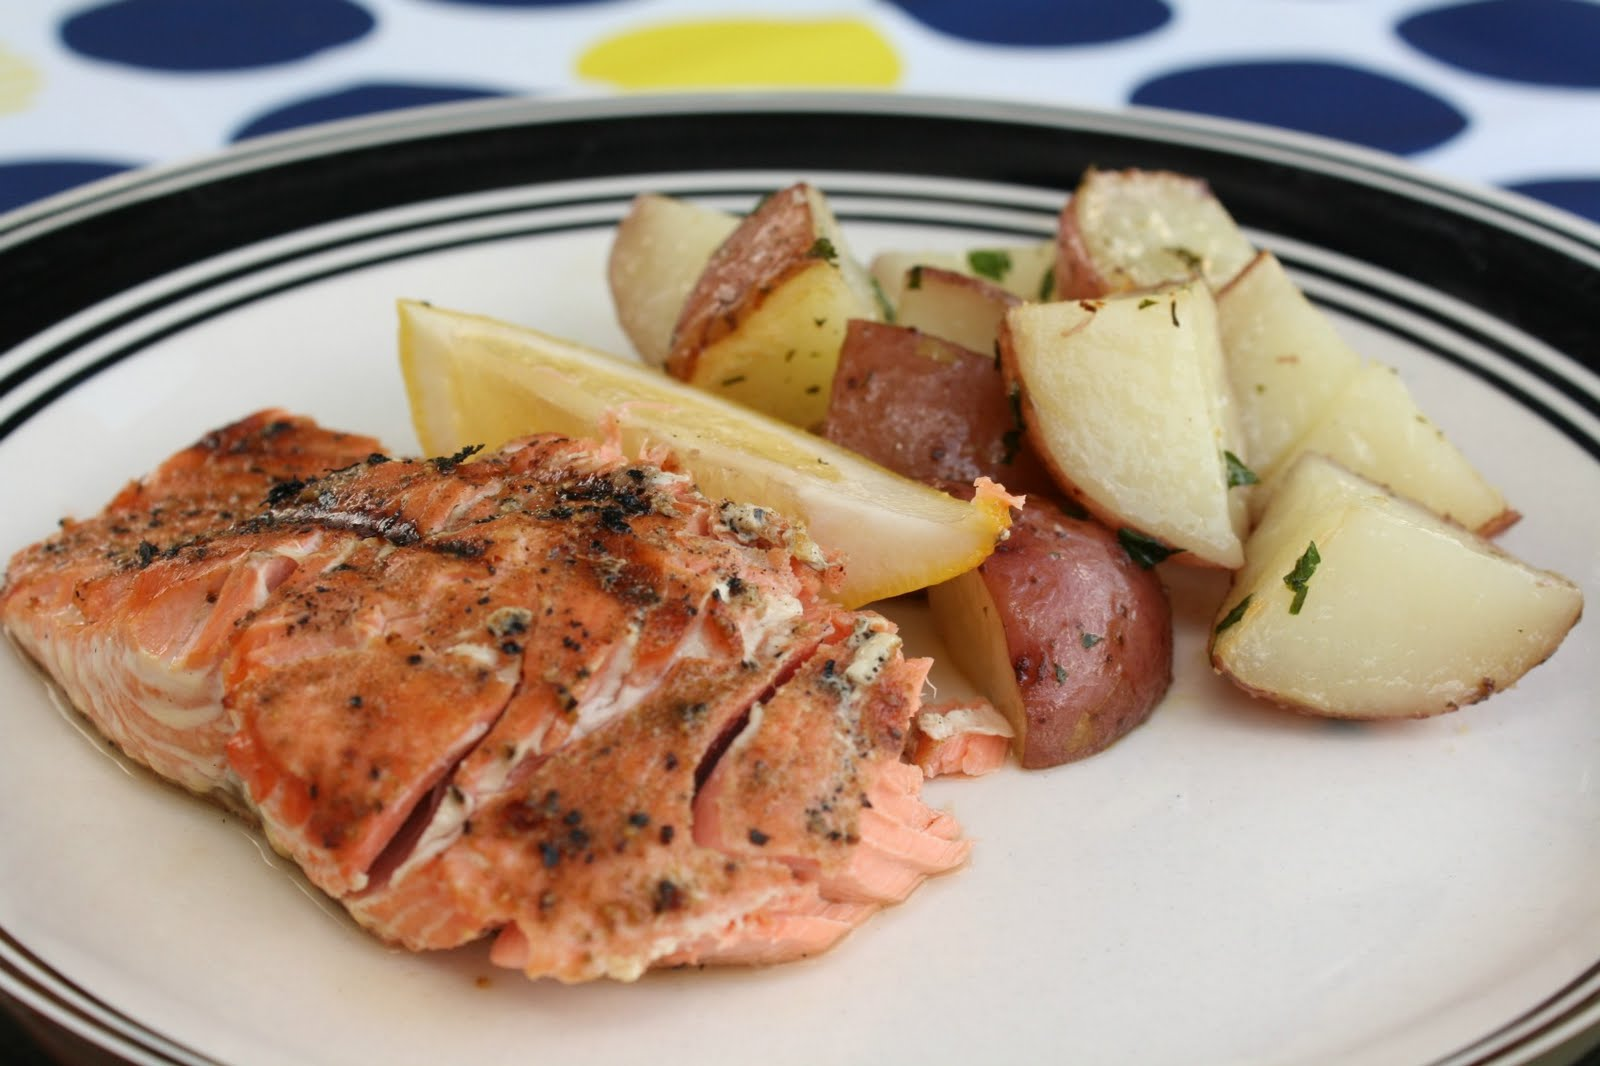 Grilled Salmon & Roasted Red Potatoes | What's For Dinner?